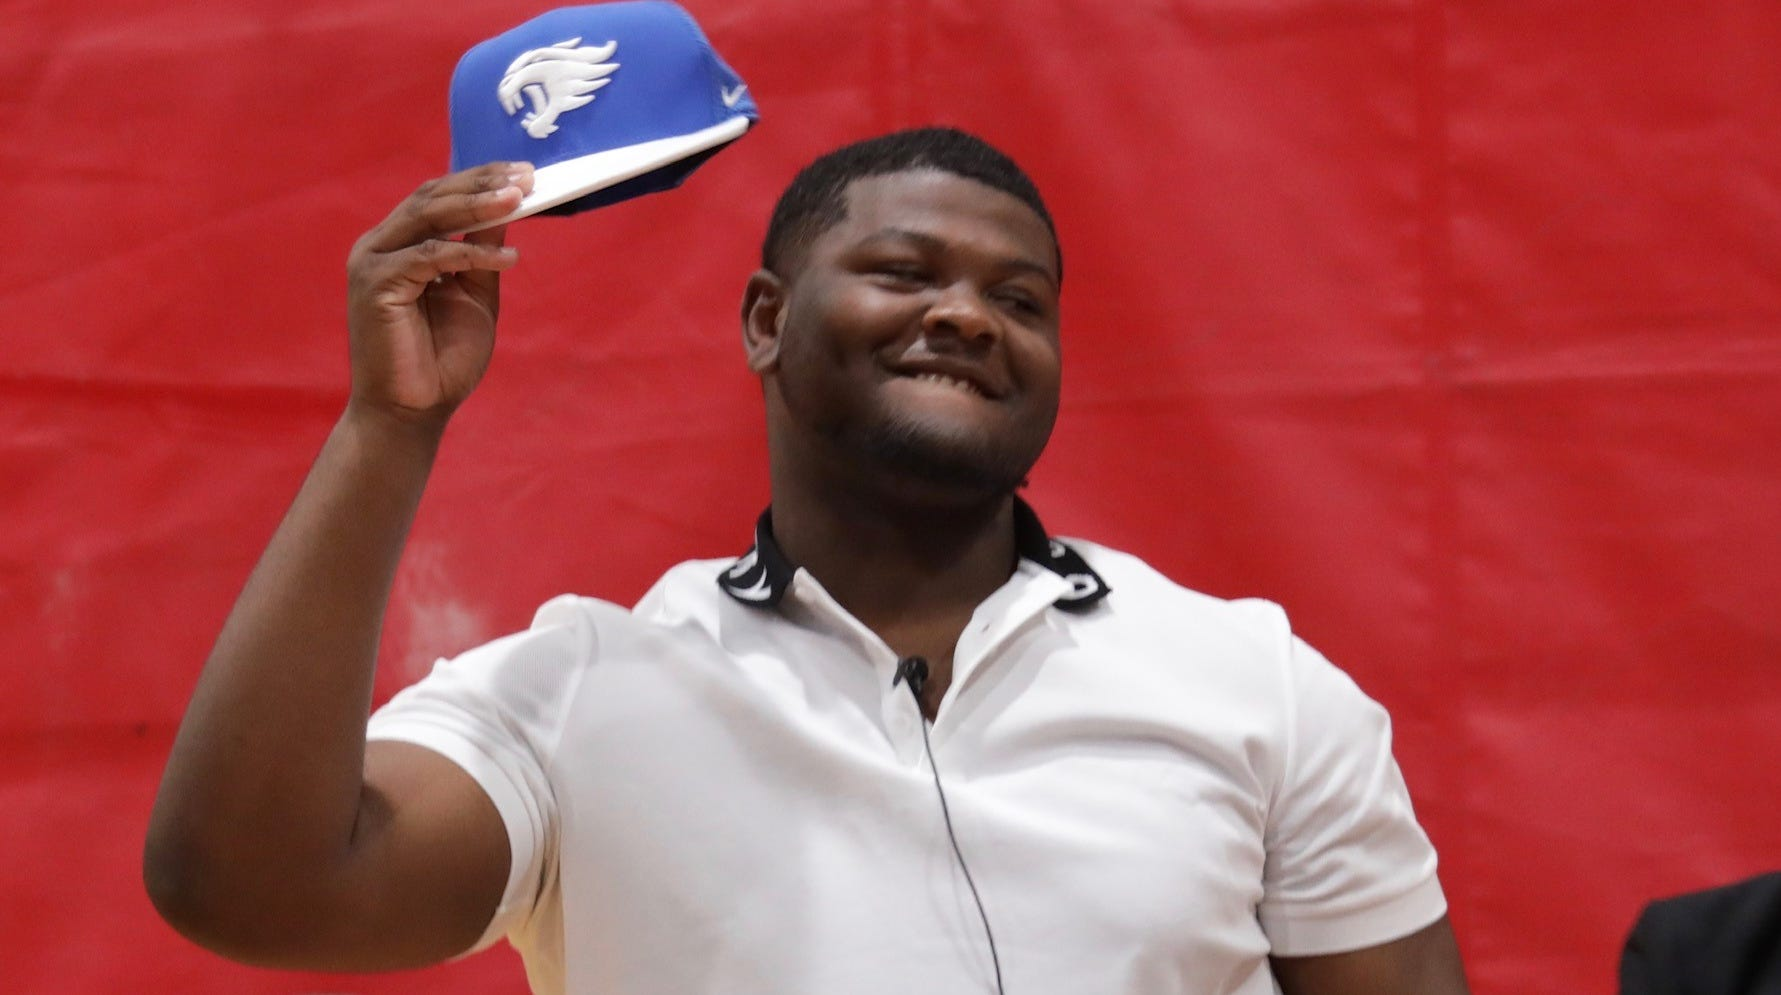 Oak Park senior Justin Rogers announces his commitment to Kentucky during a ceremony at the school Monday, May 20, 2019.